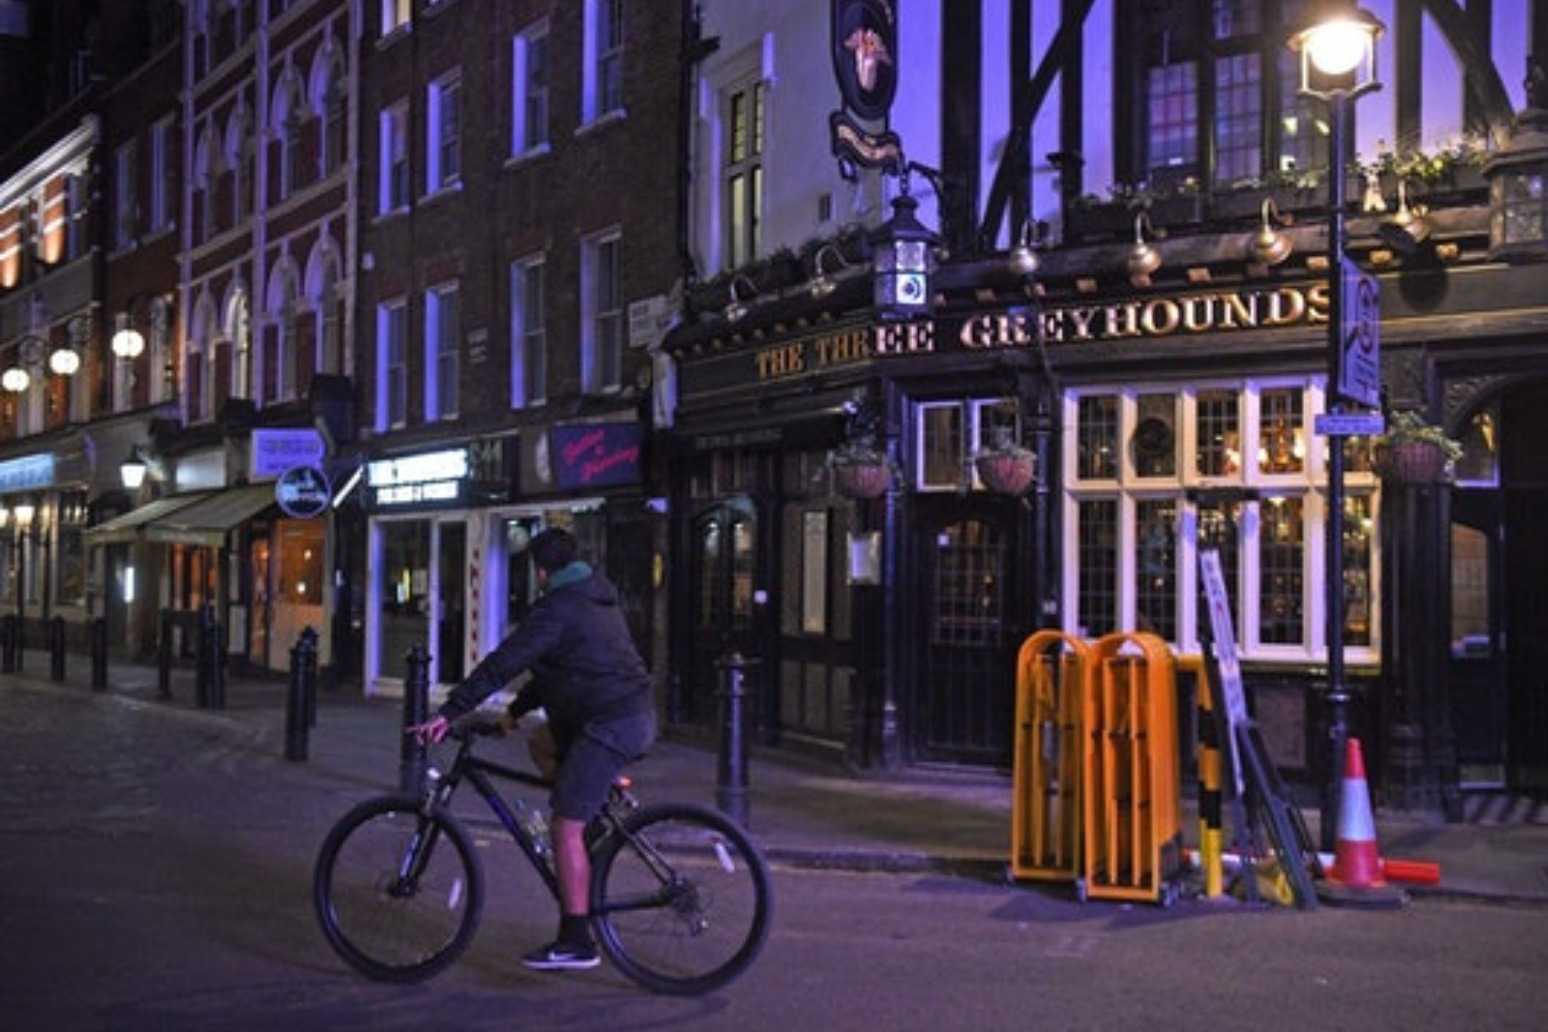 Drinkers in England face first night of 10pm curfew